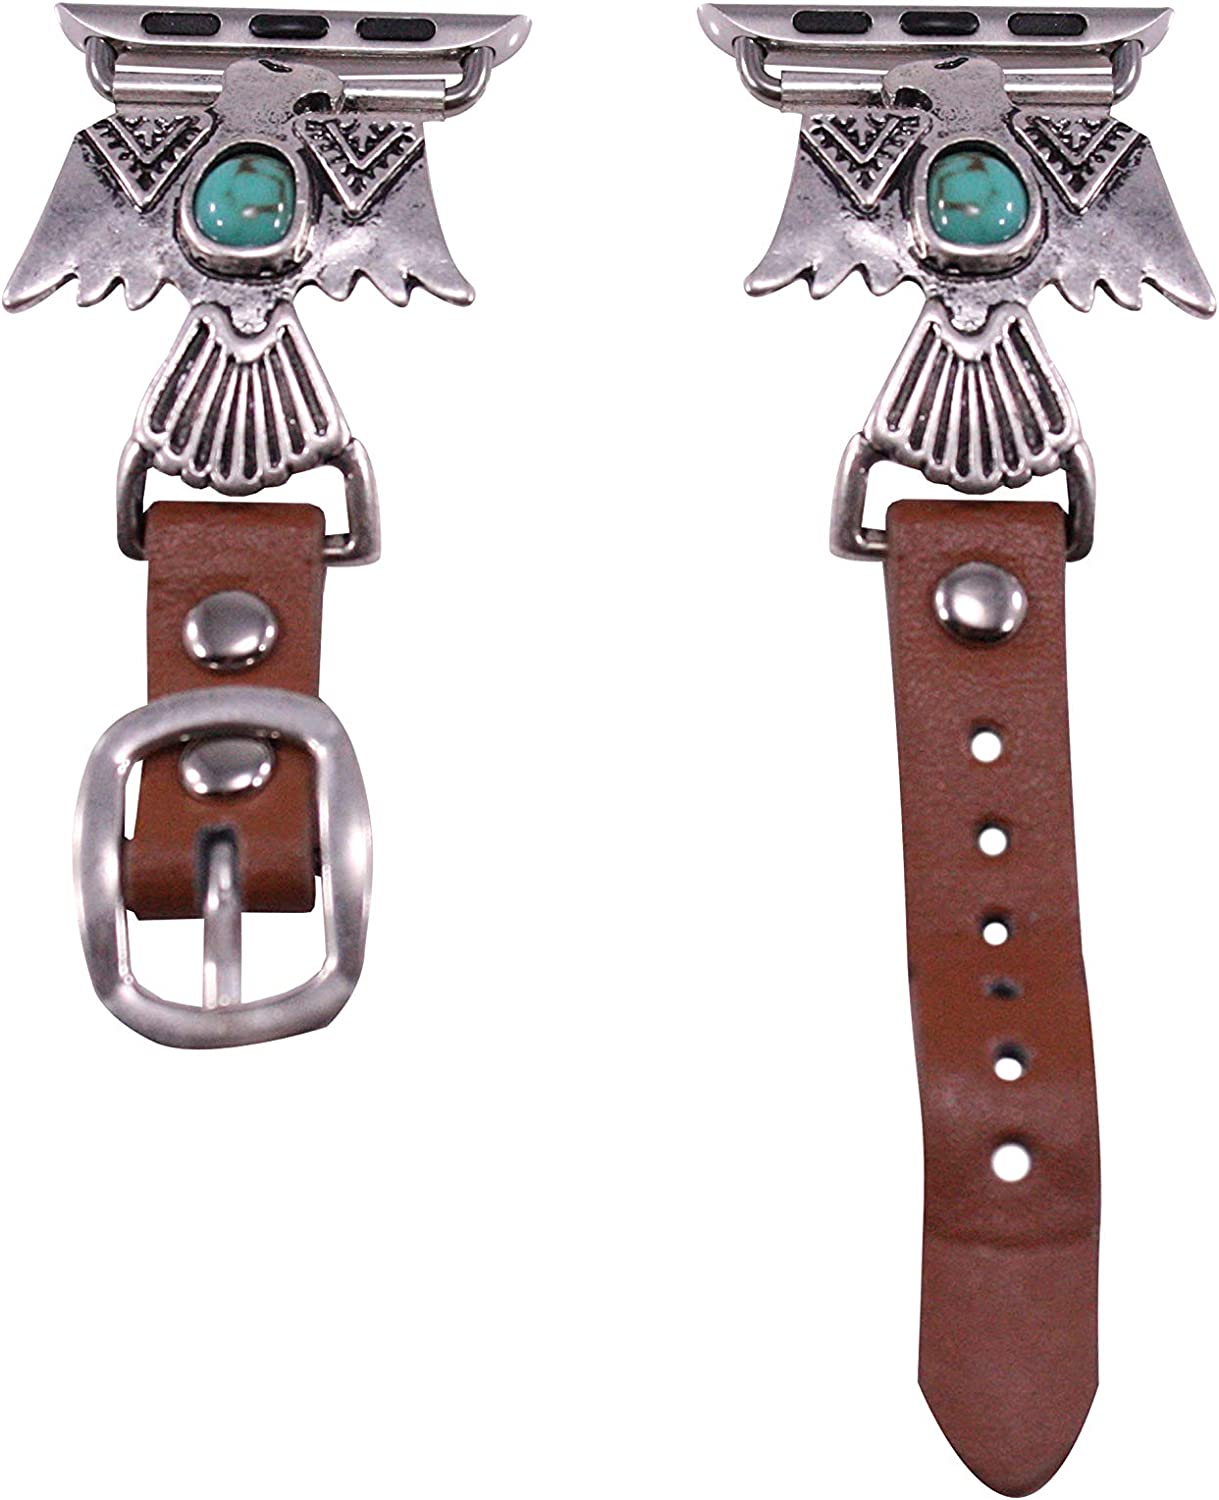 44mm/42mm Compatible for Apple Watch, Delicate Eagle with Turquoise Accent Watch Band No. 4L